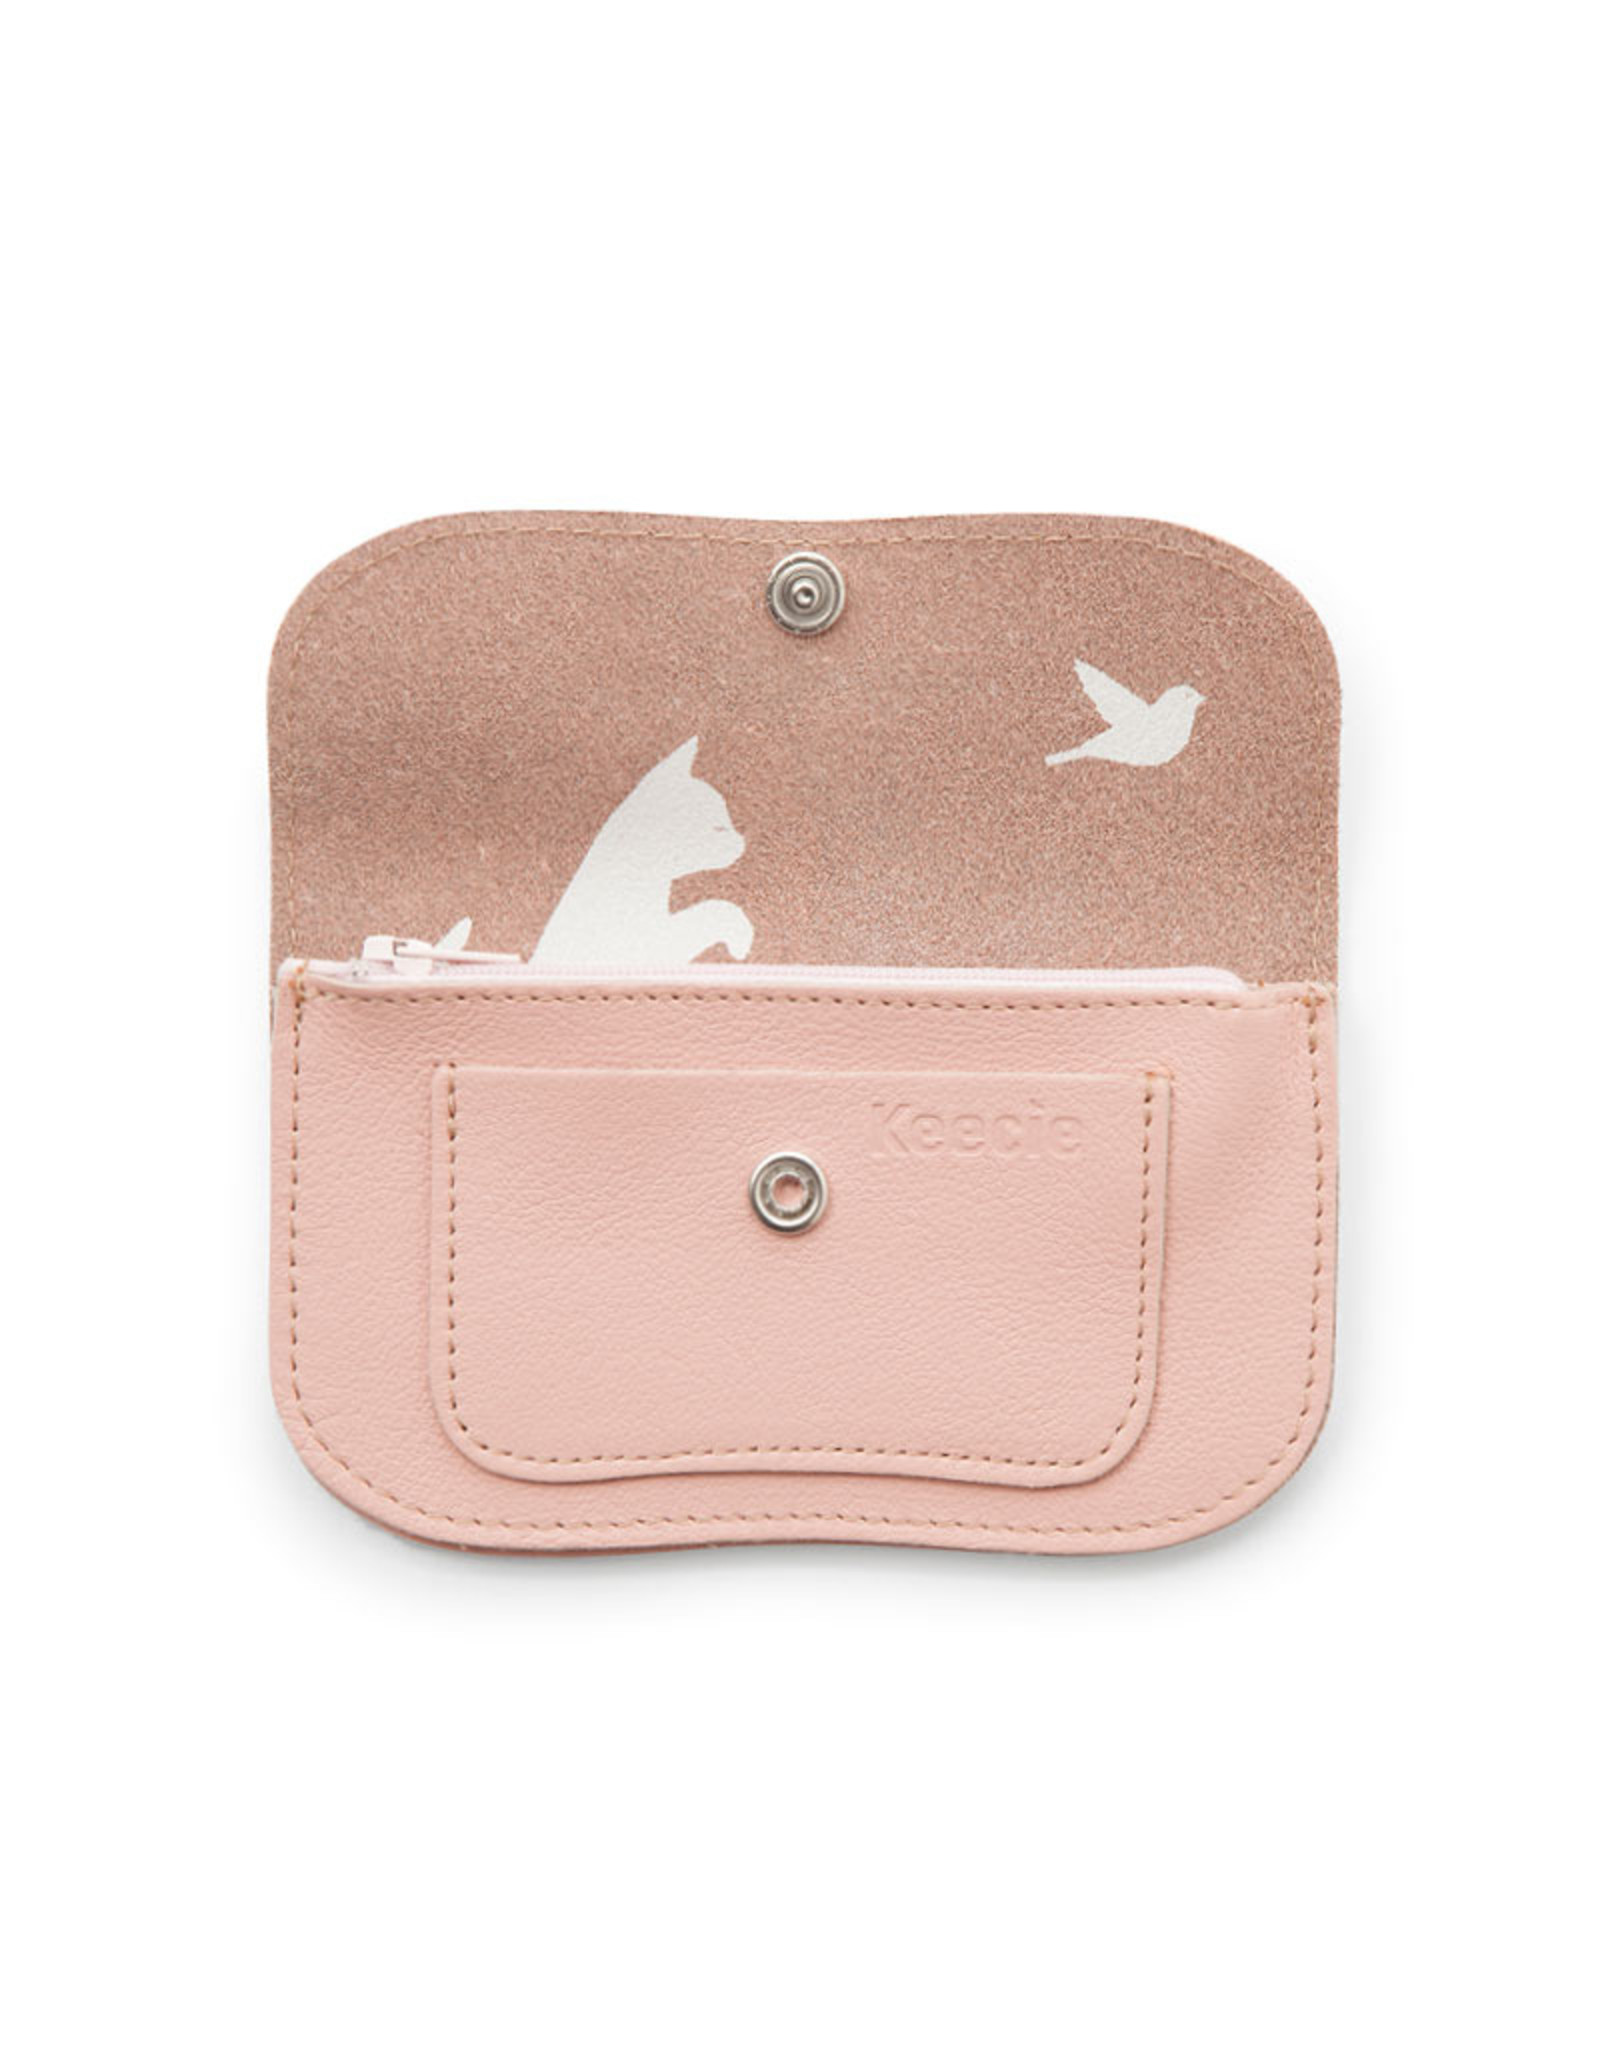 Keecie Cat chase small wallet pink